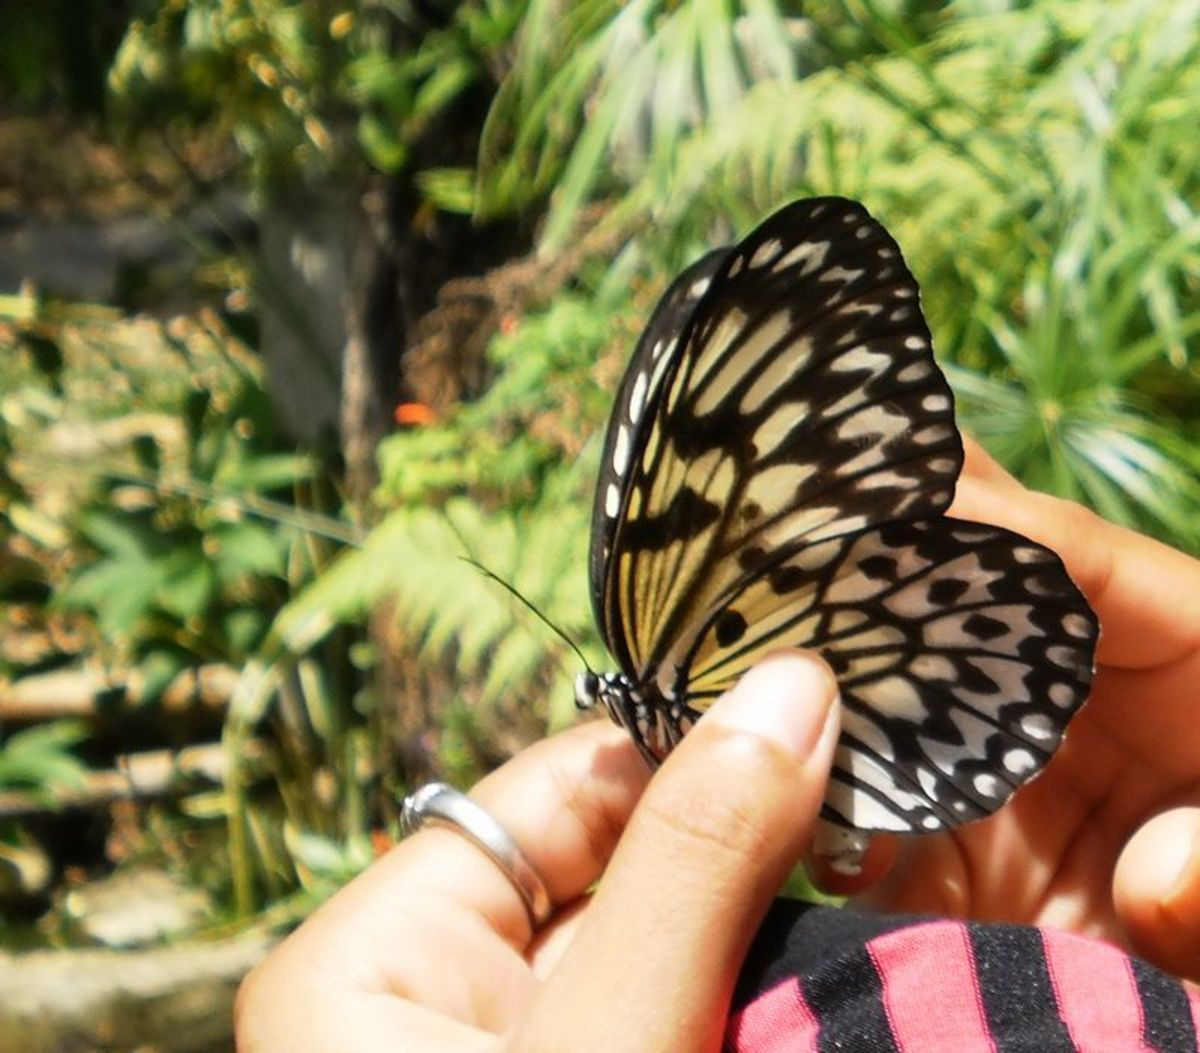 A wonderful butterfly found at the Simply Butterflies conservation center.